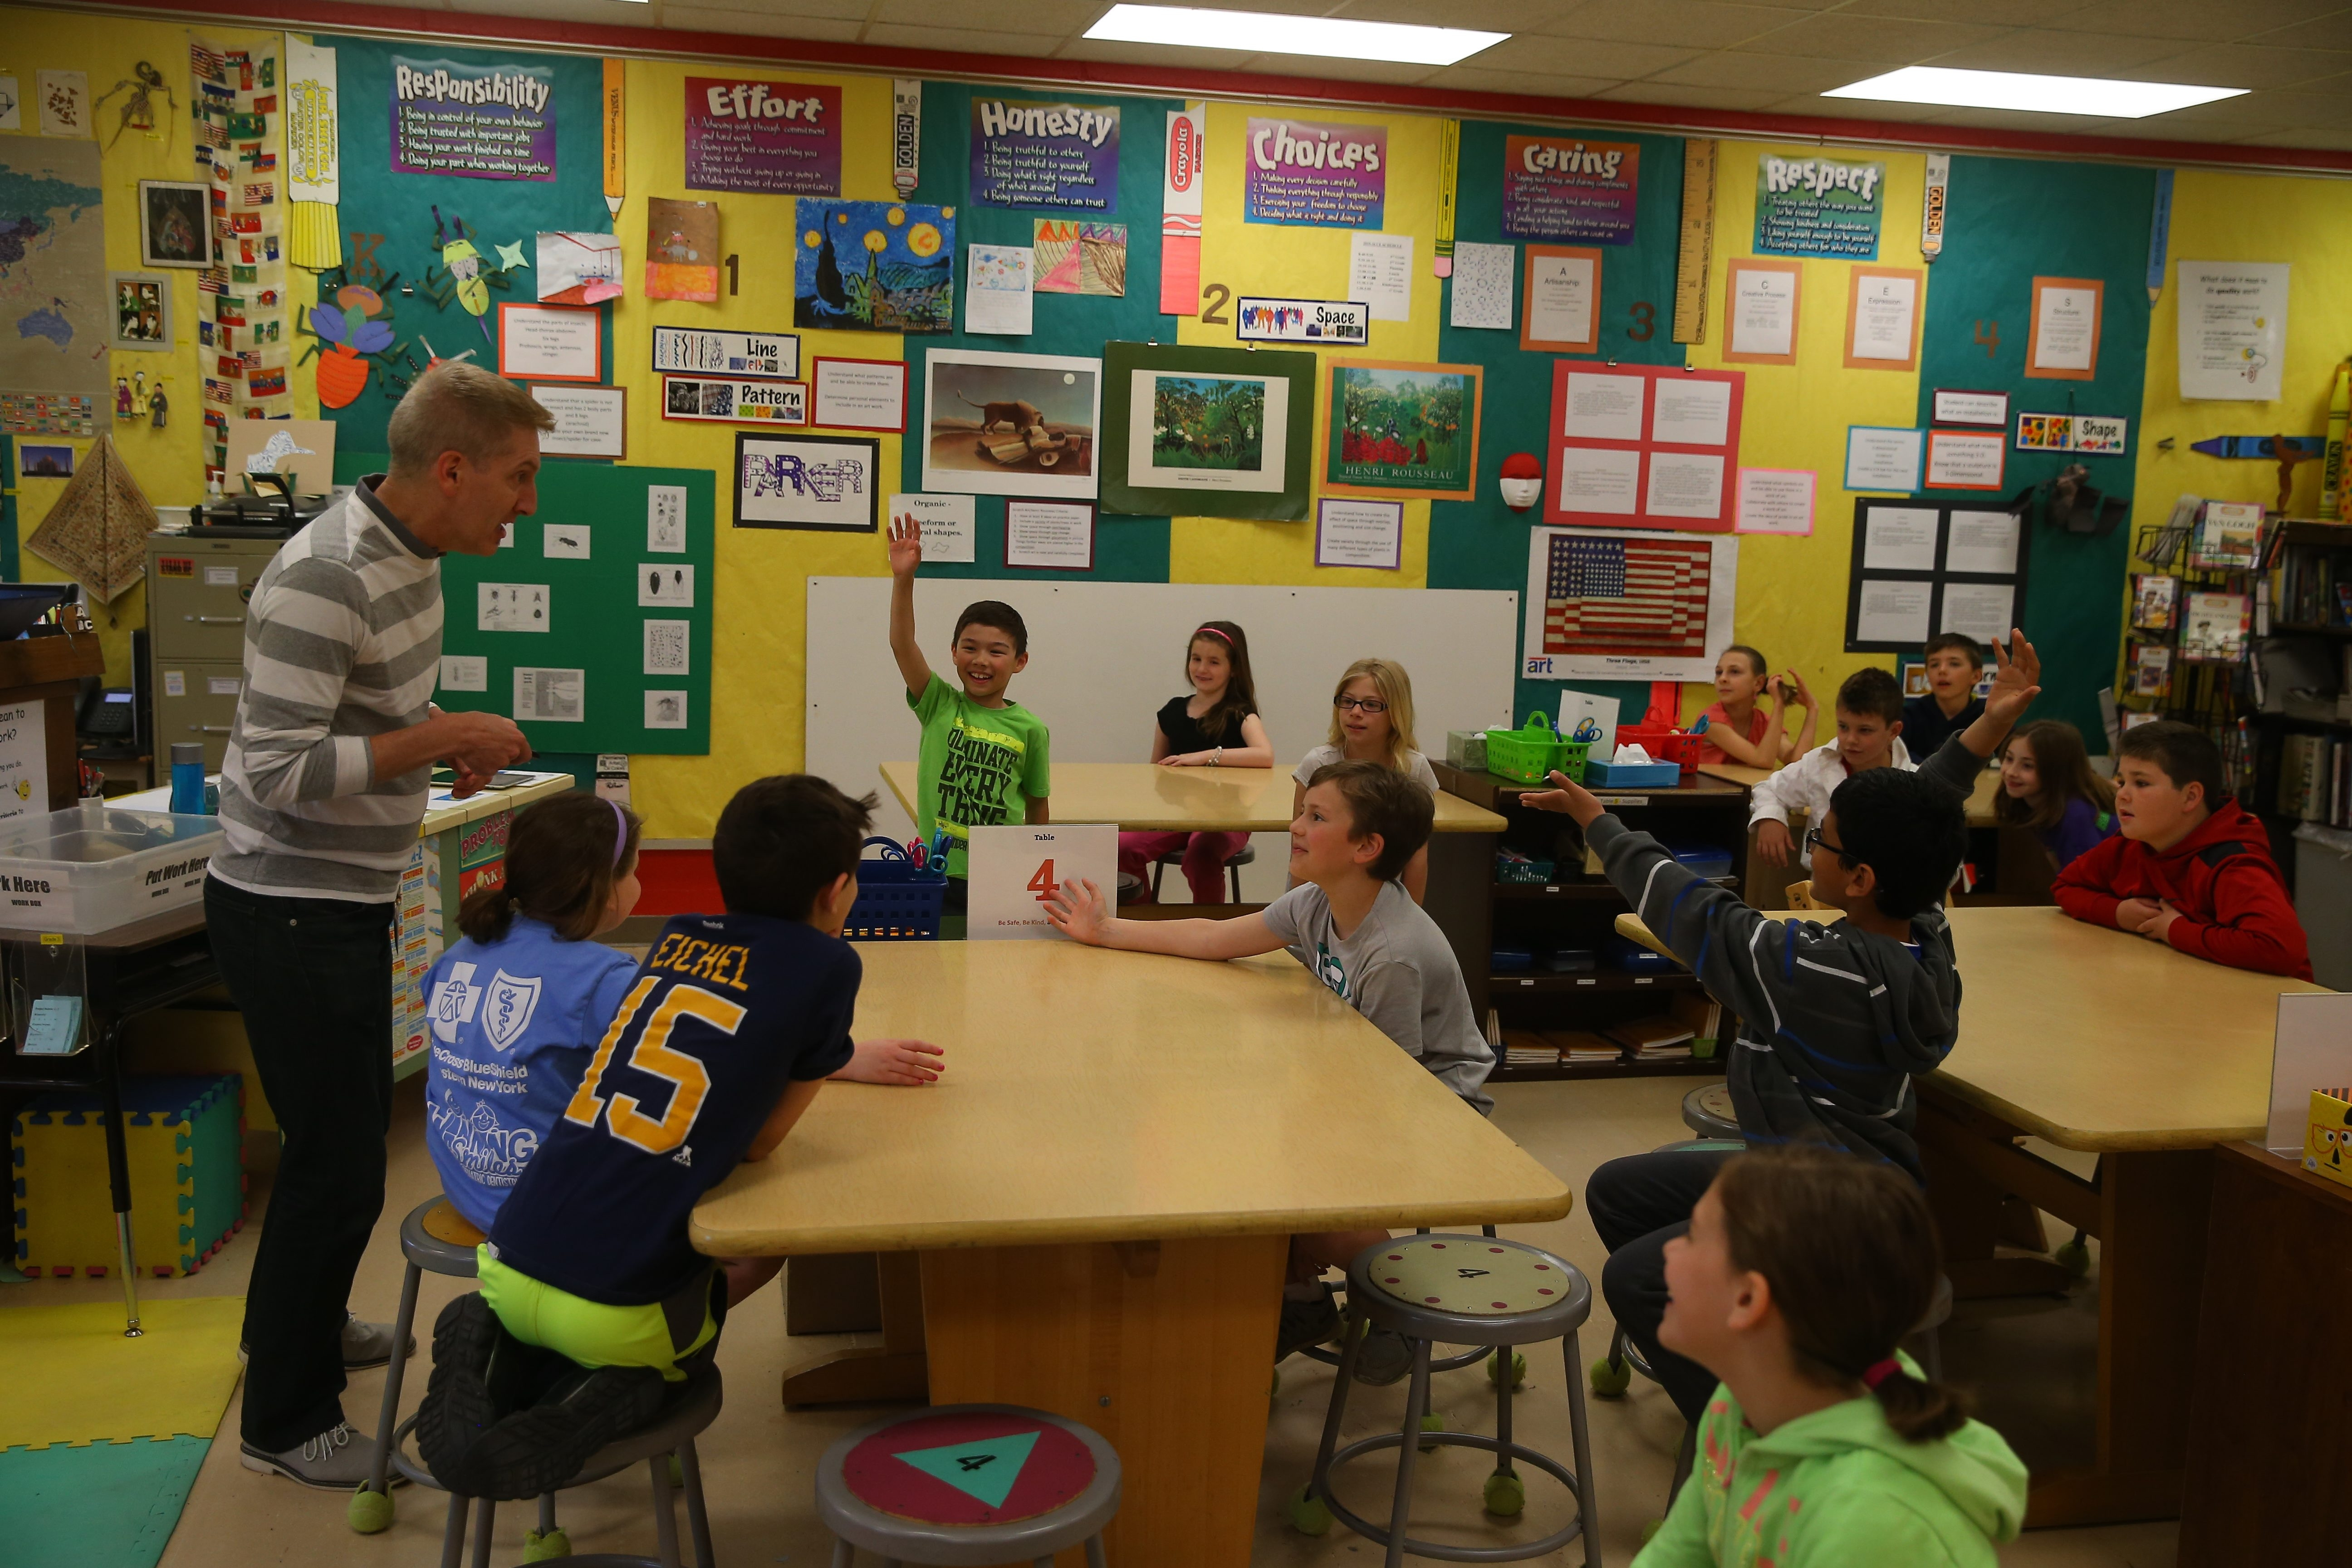 Thom Knab teaches art to students at Dodge Elementary School. Candidates backed by the Williamsville Teachers Union are poised to form a majority on the board.